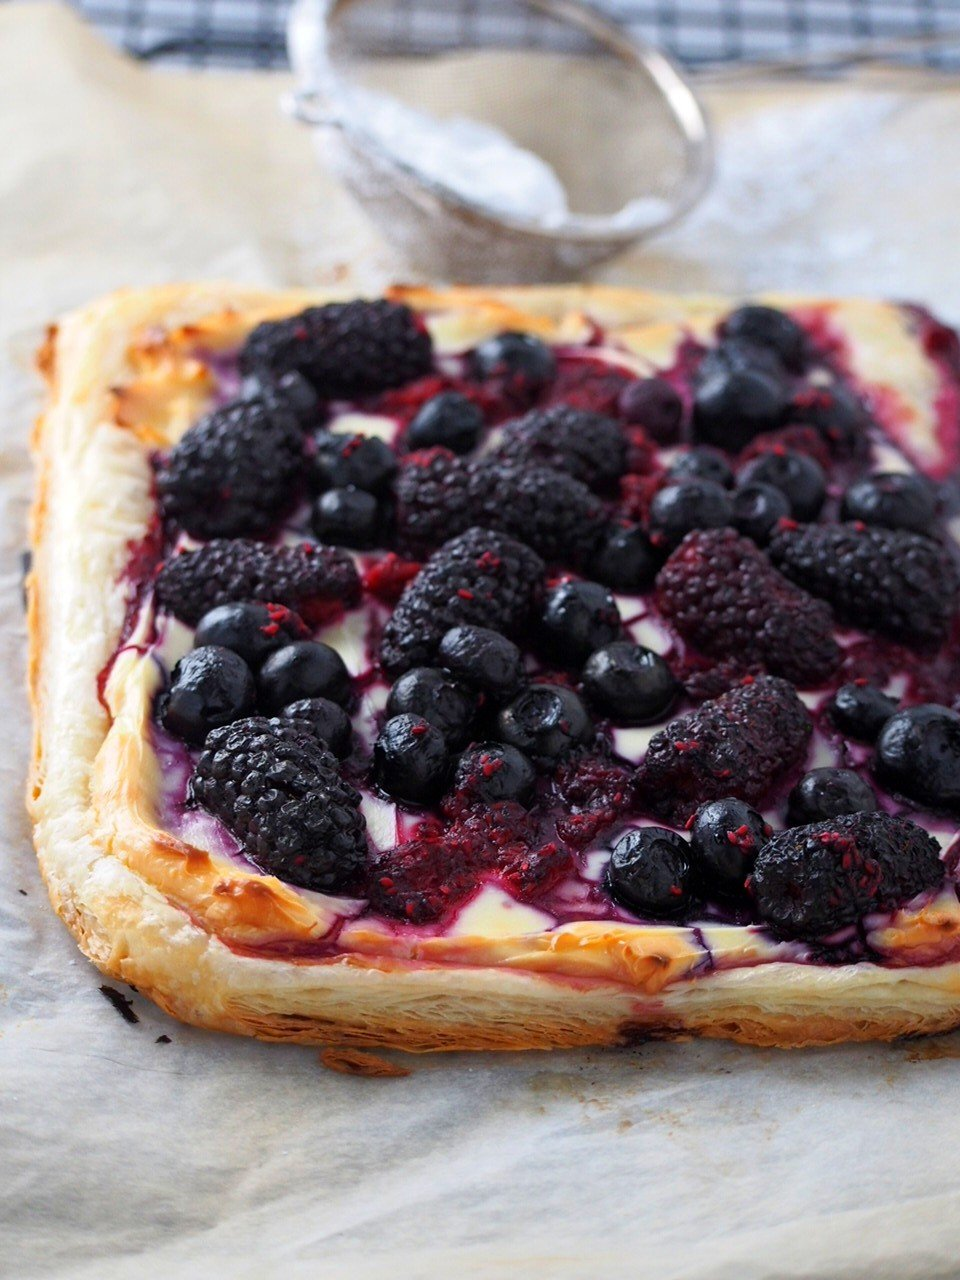 Closer view of the berry tart.